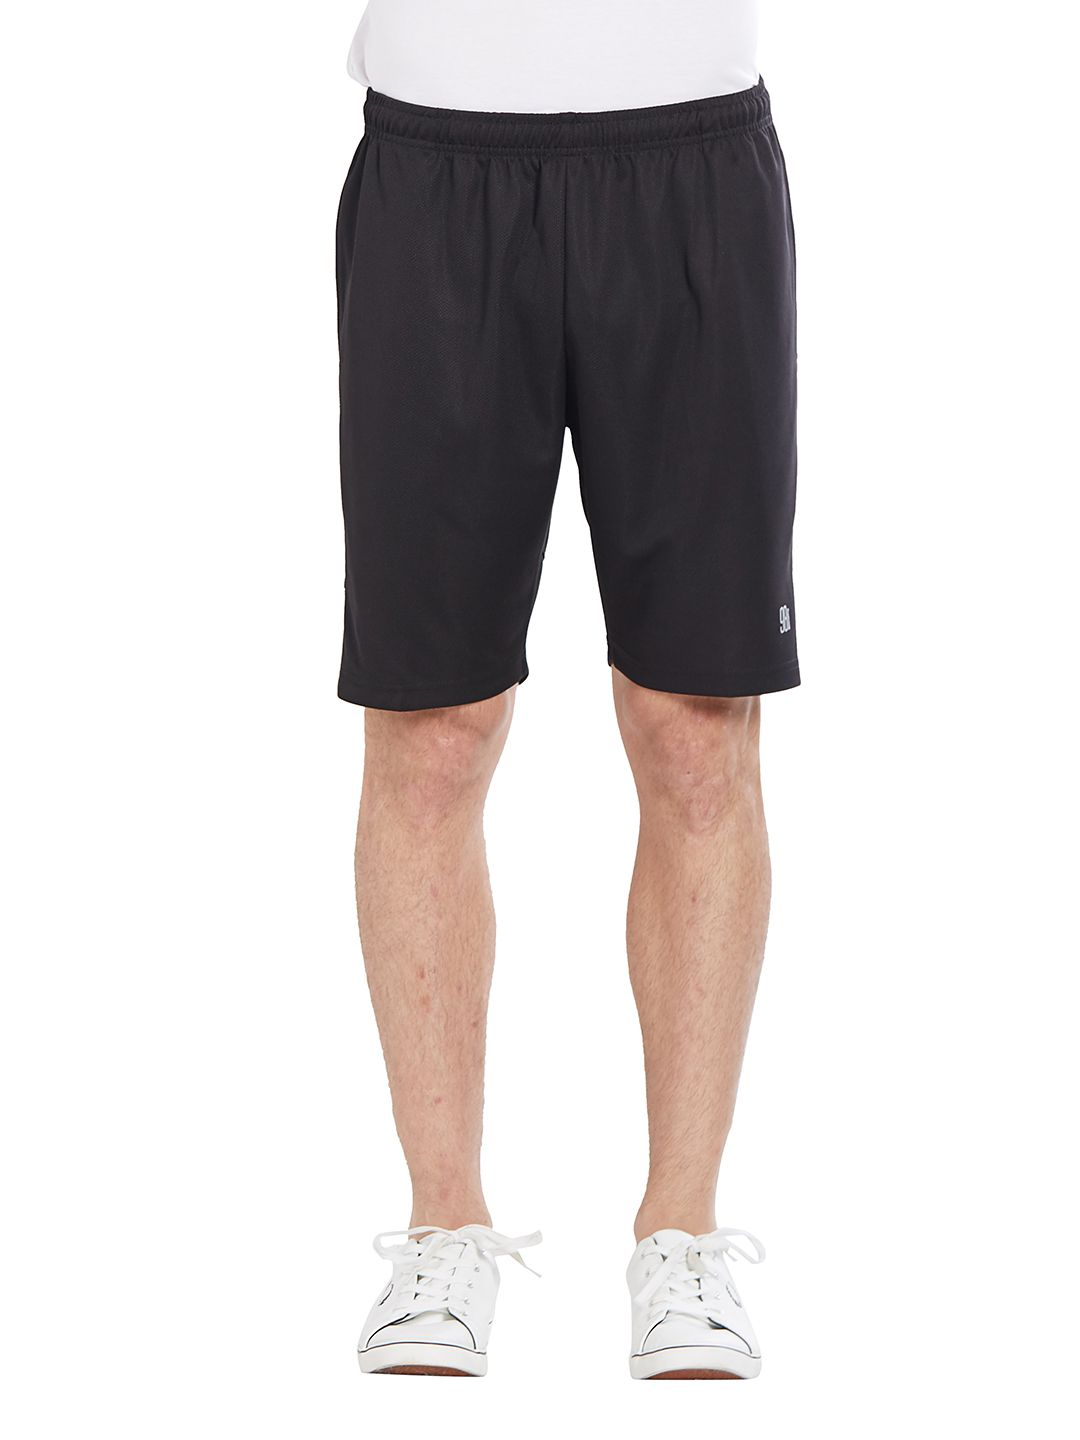 BONATY Black 100% Polyester Solid  Shorts For Men